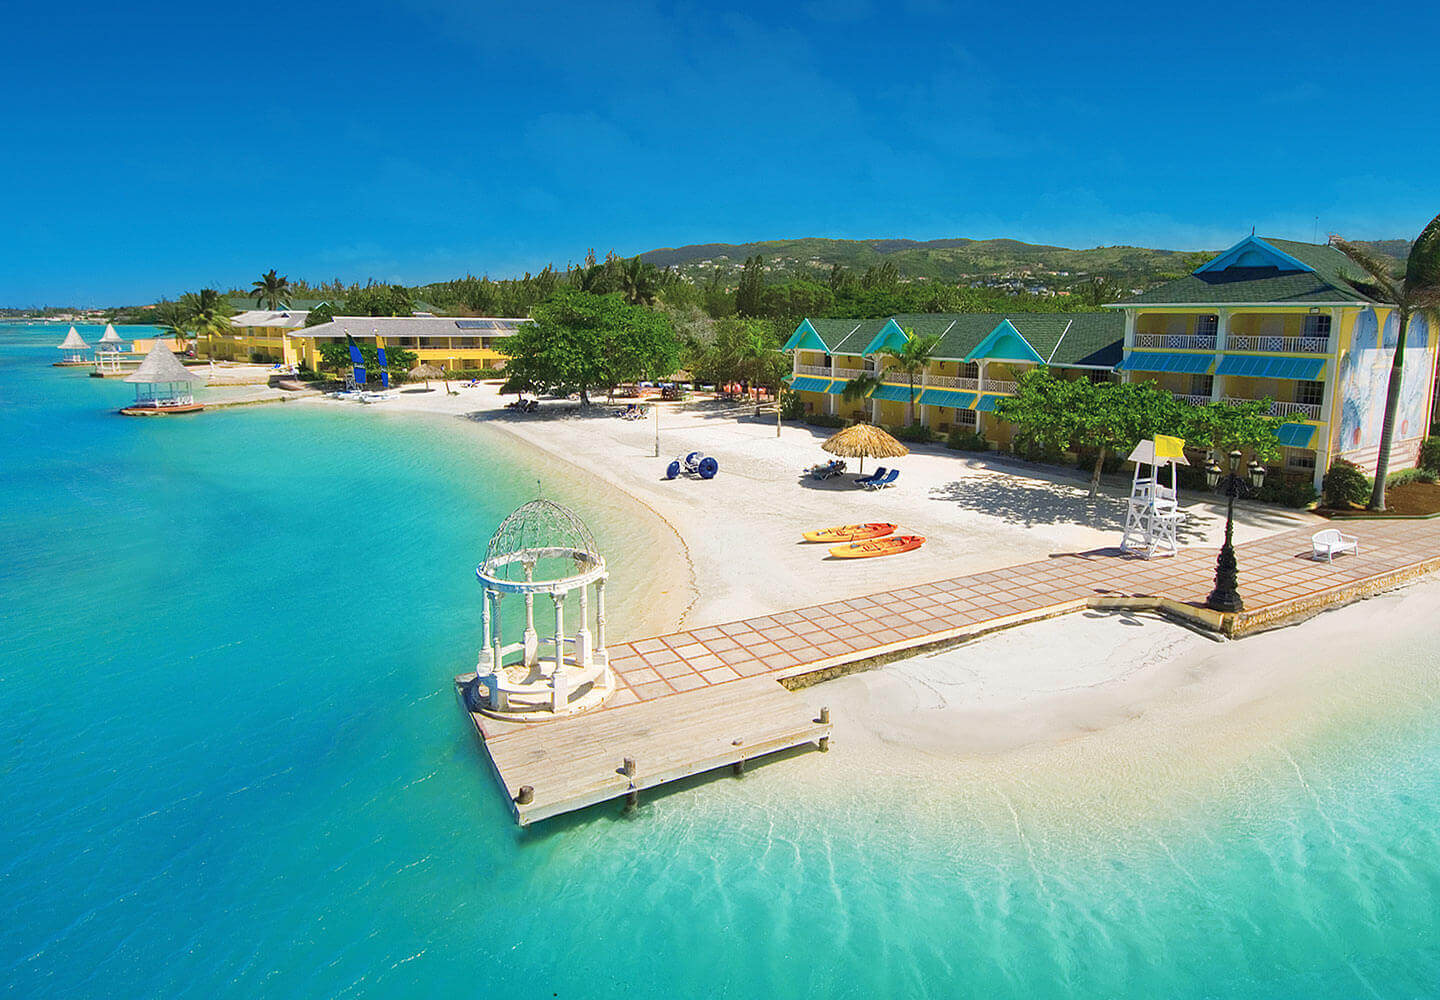 Sandals Royal Caribbean - Honeymoons